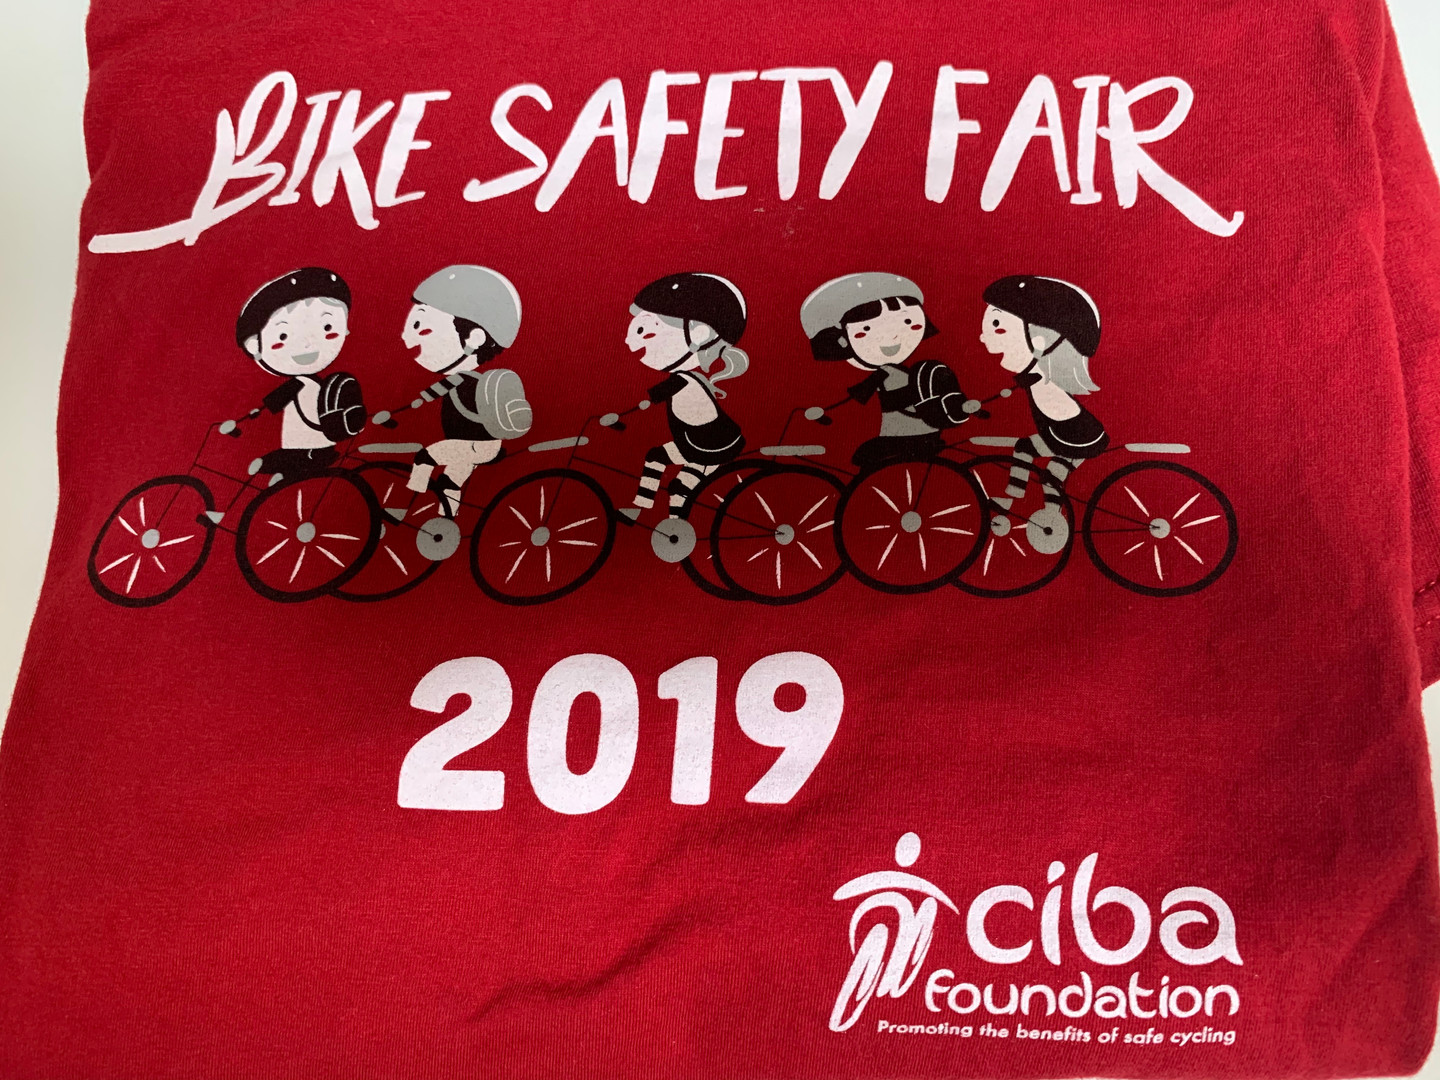 Bike Safety Fair t-shirt.jpg